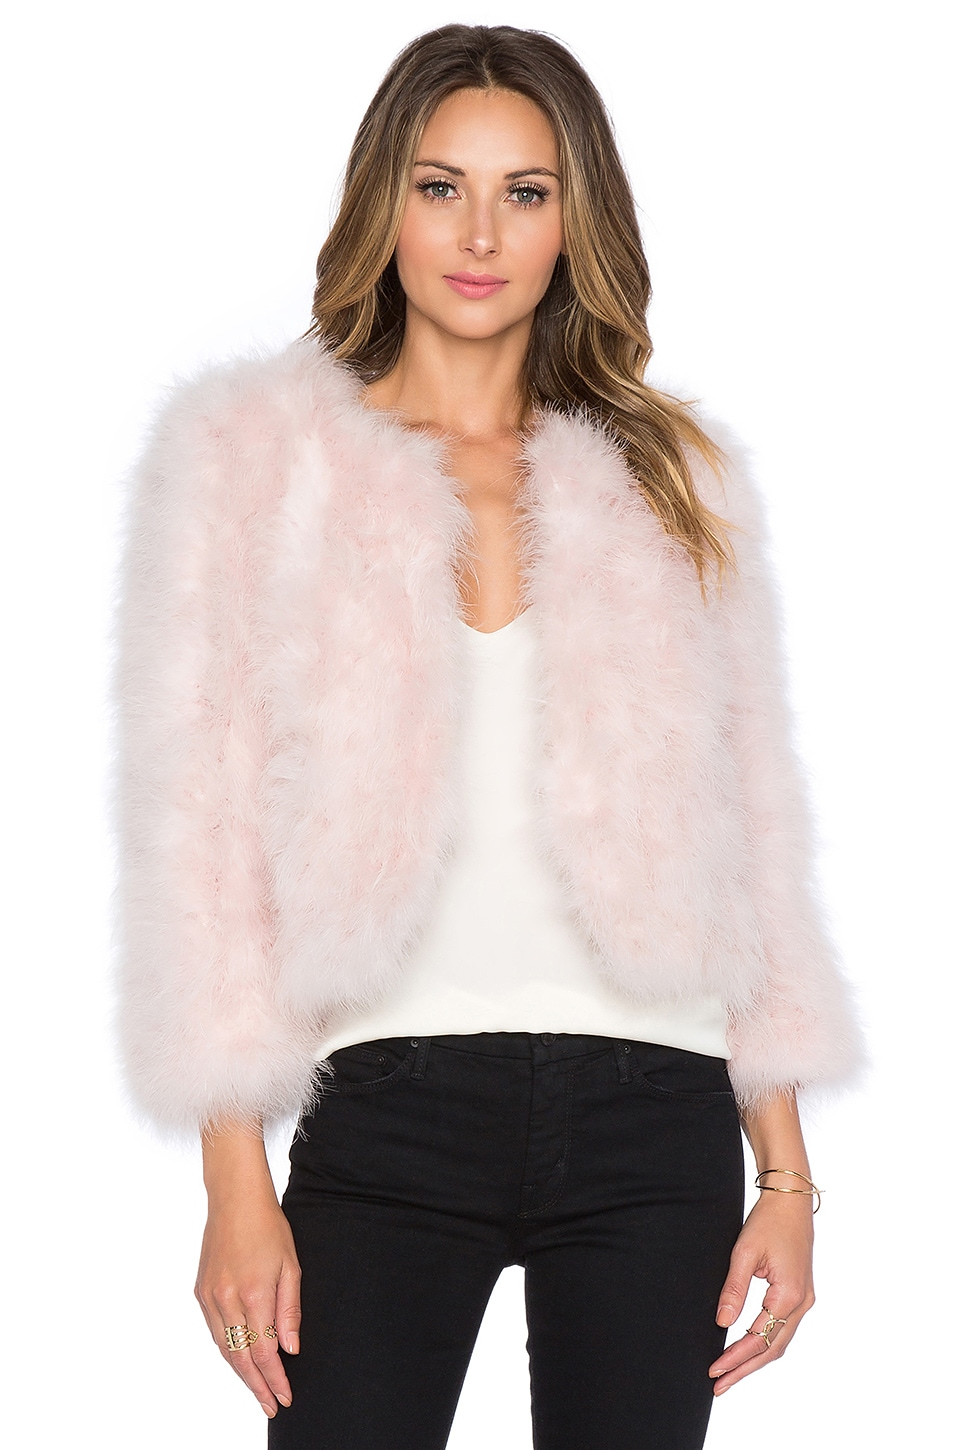 Yumi Kim Away We Go Faux Fur Feather Jacket in Pink | REVOLVE